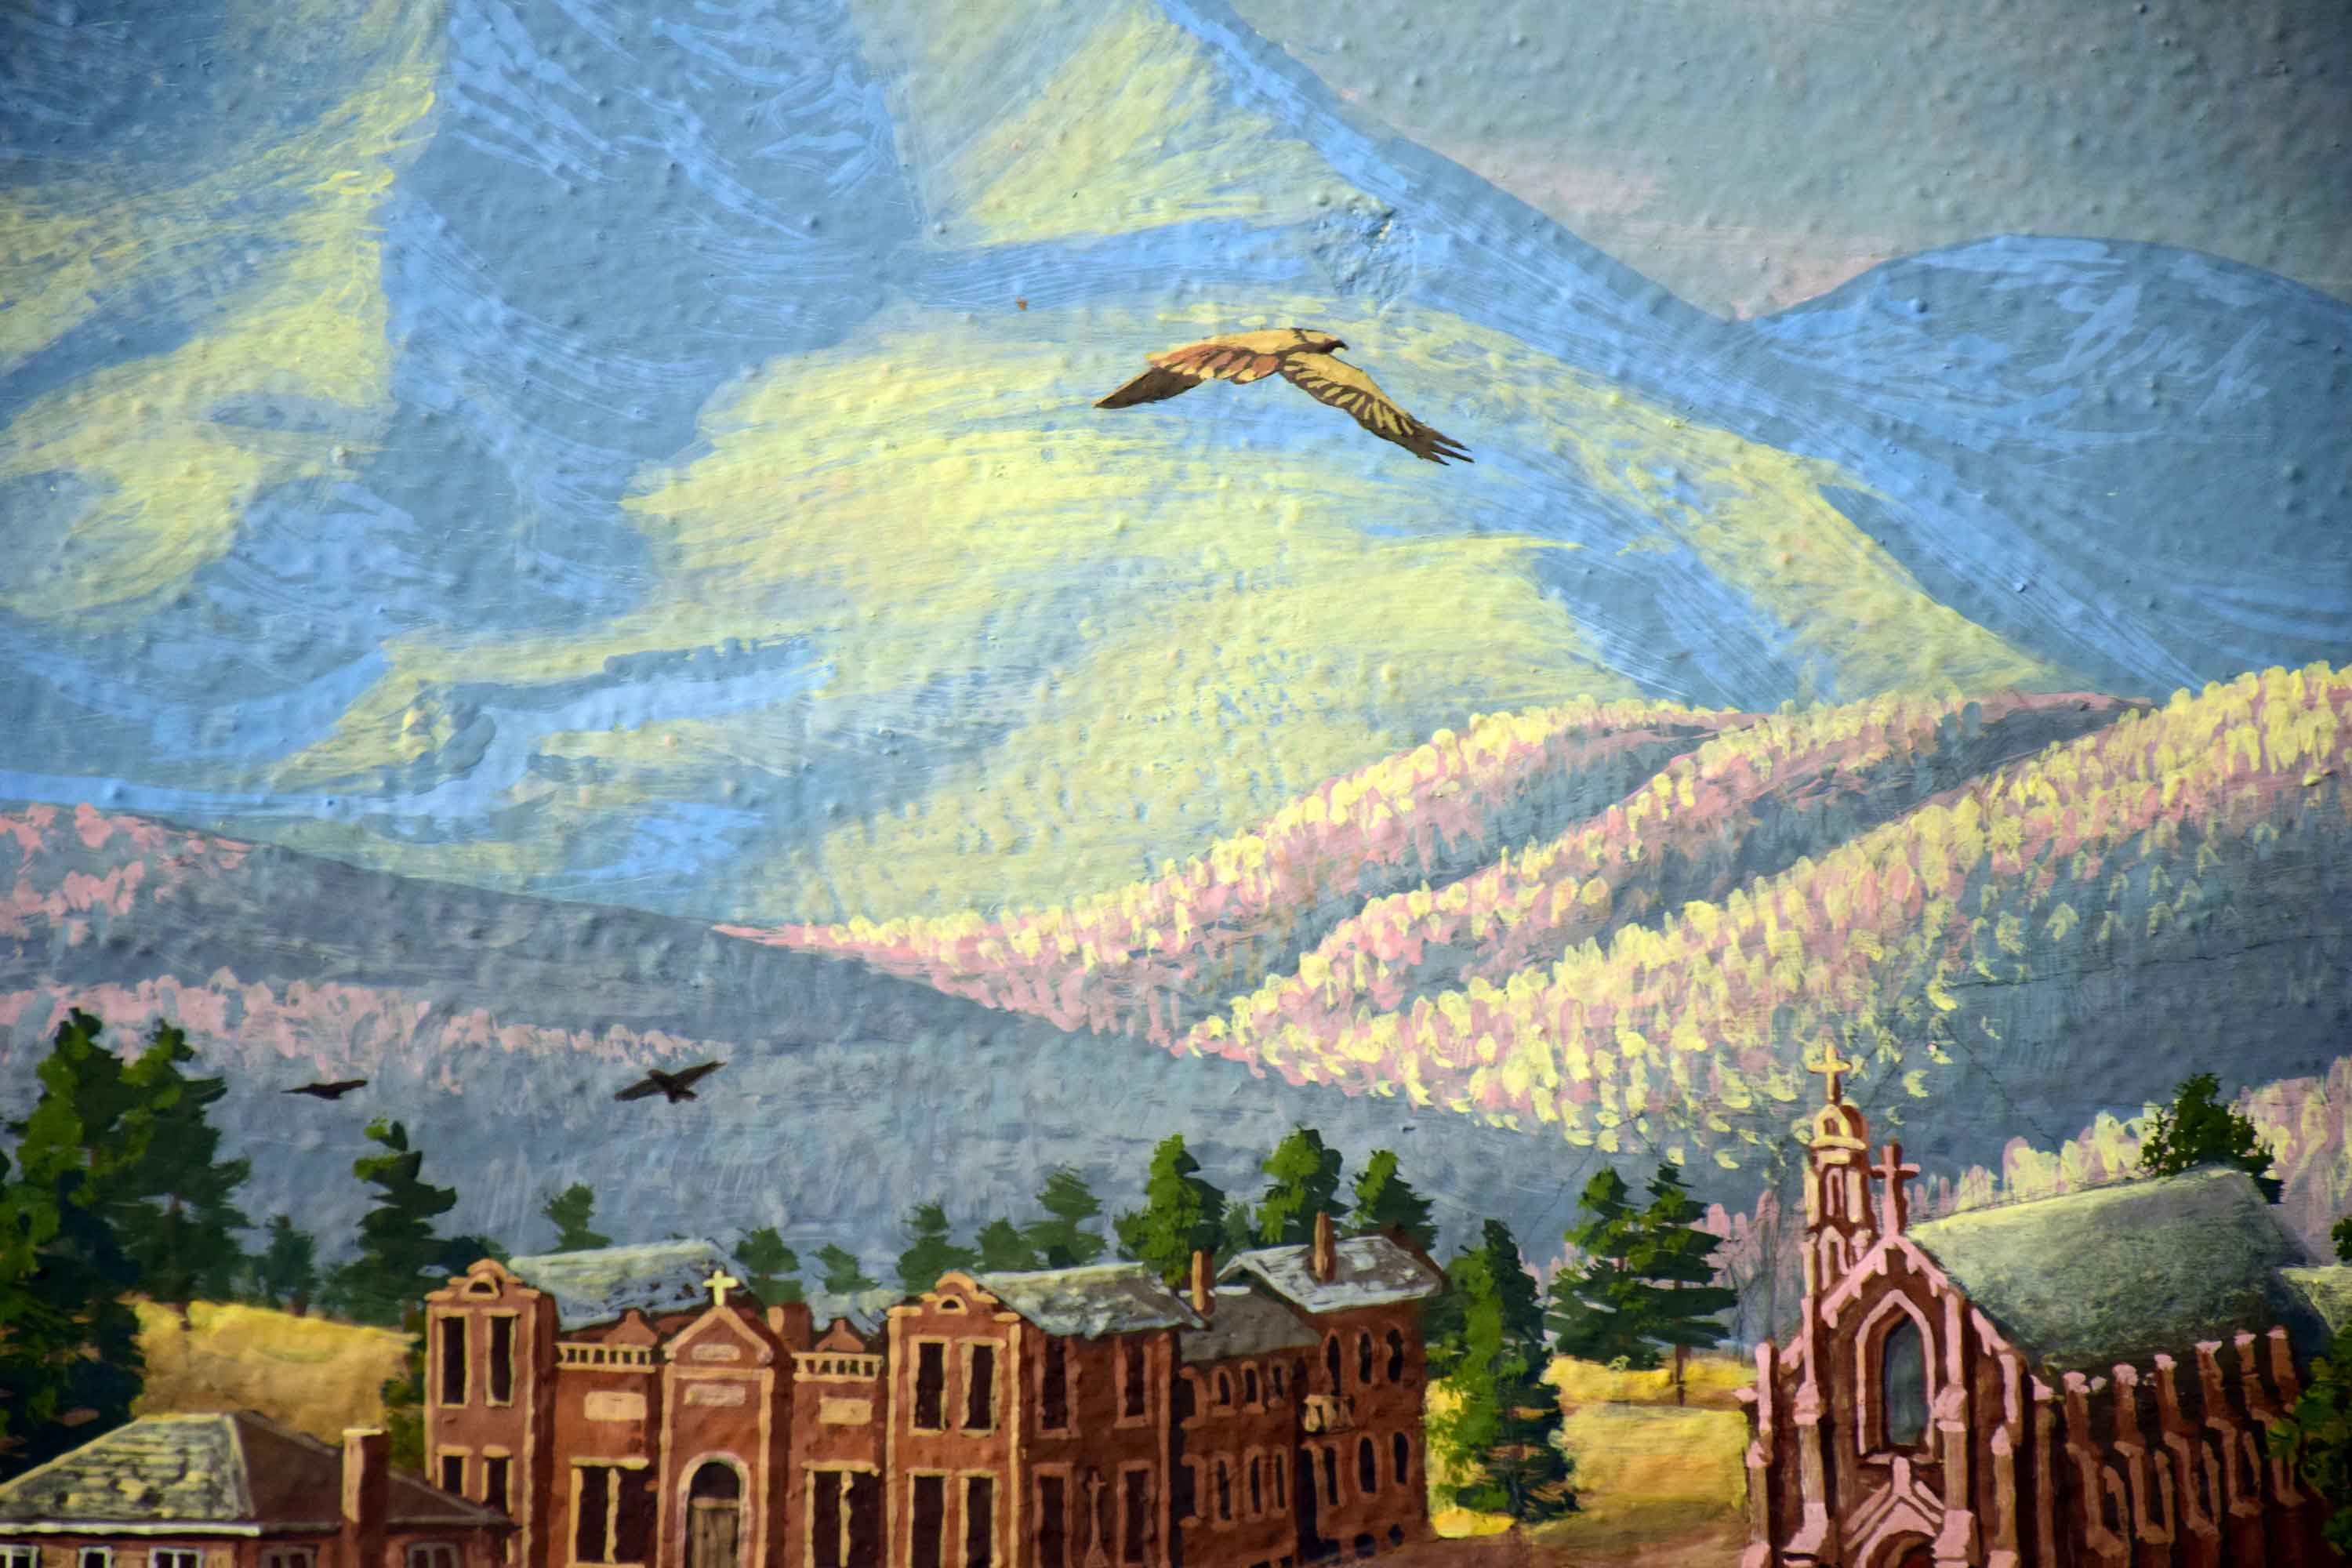 Flagstaff Visitor Center Mural 19